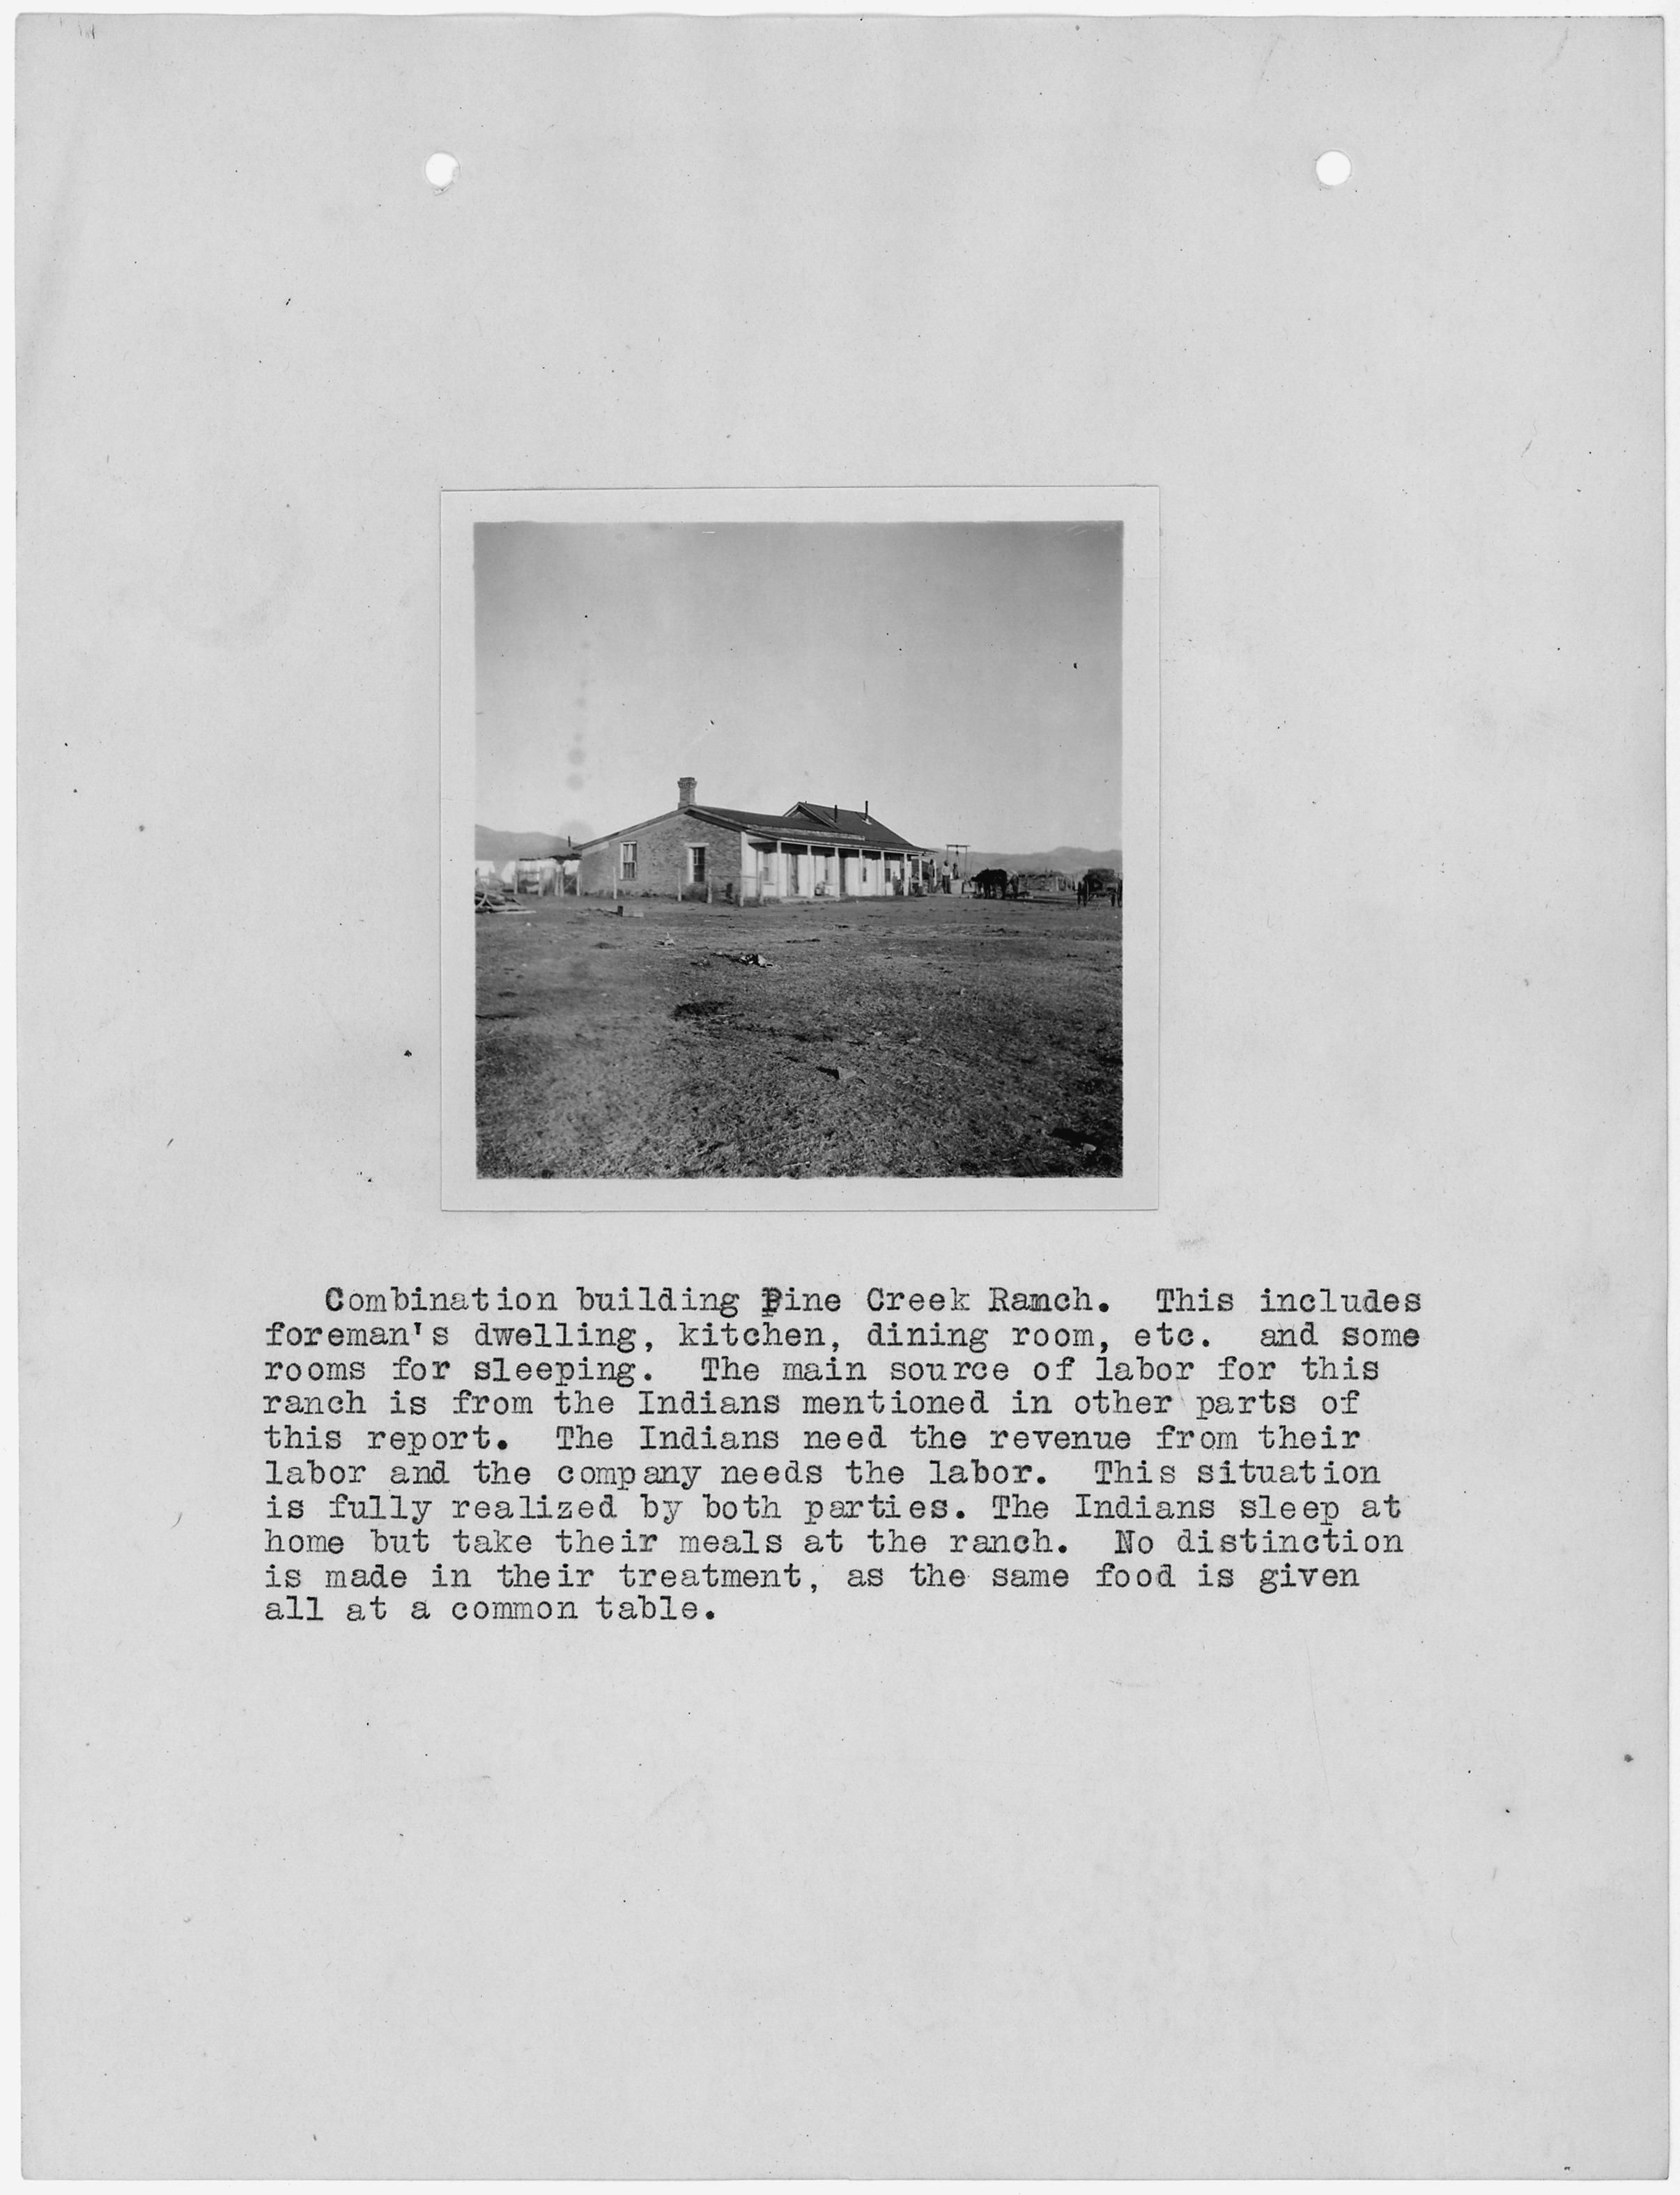 Photograph,_with_caption,_of_building_at_Pine_Creek_Ranch,_Nevada,_apparently_taken_to_document_matters_relating_to..._-_NARA_-_296196.jpg